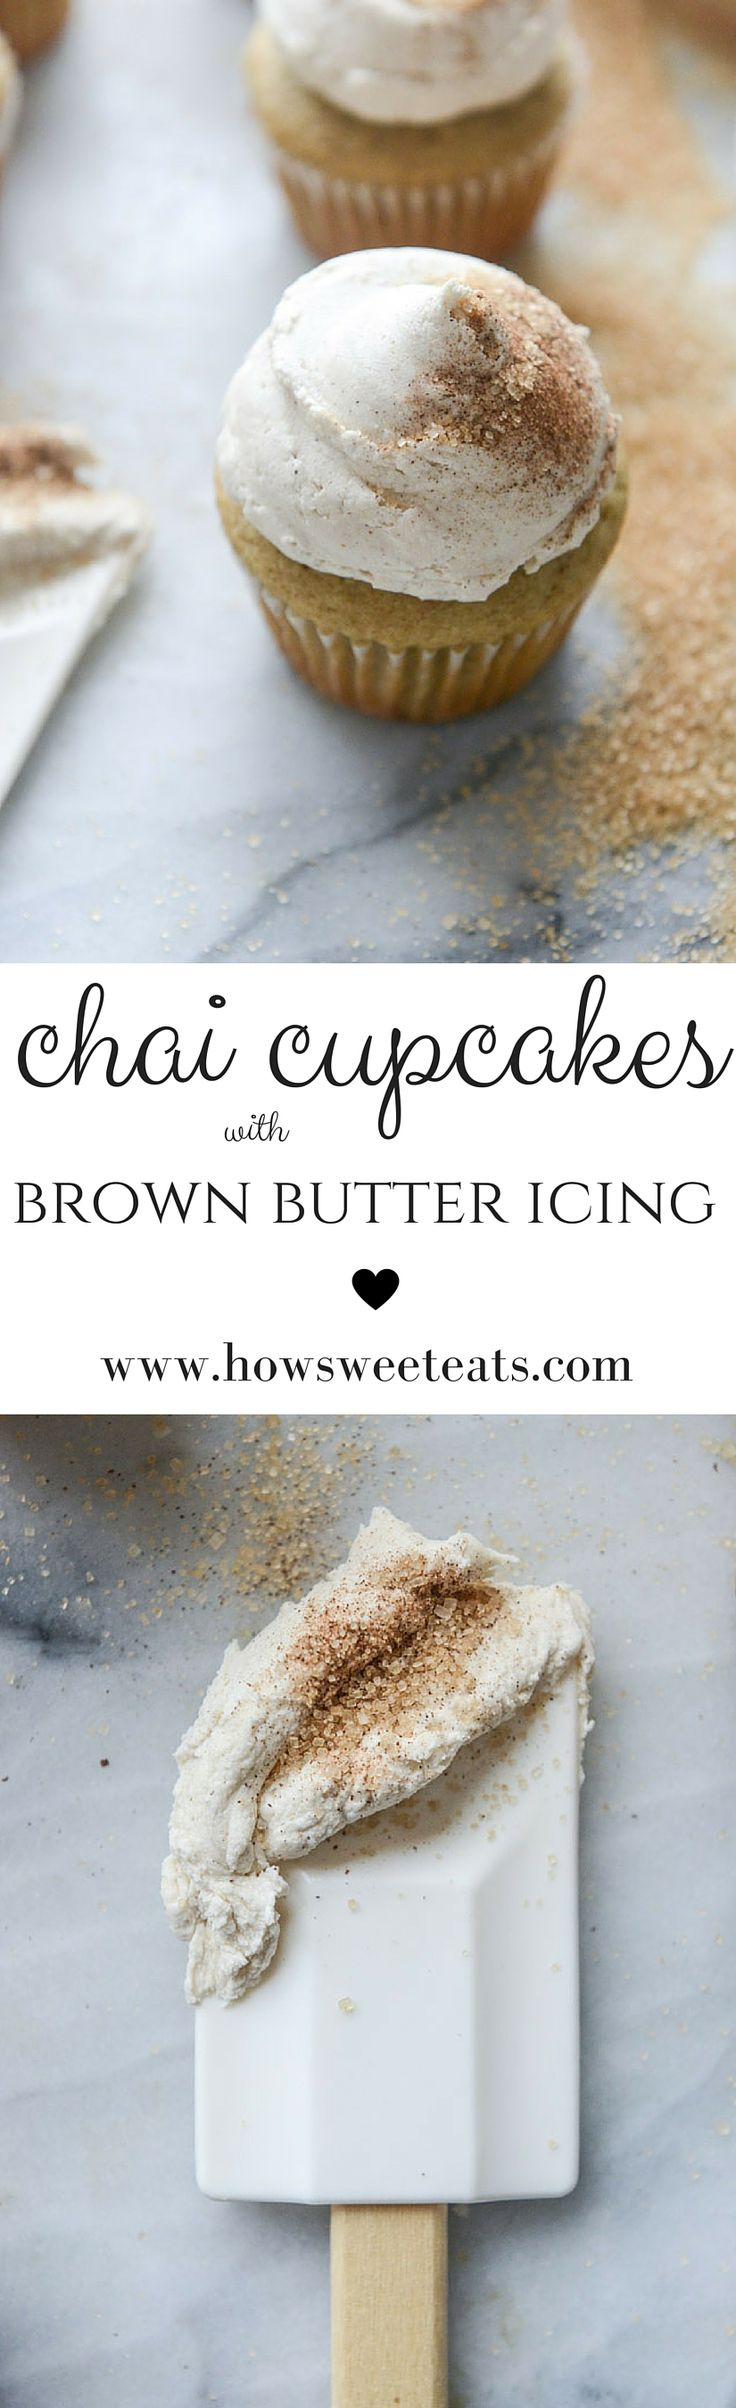 Chai Cupcakes by @howsweeteats I howsweeteats.com